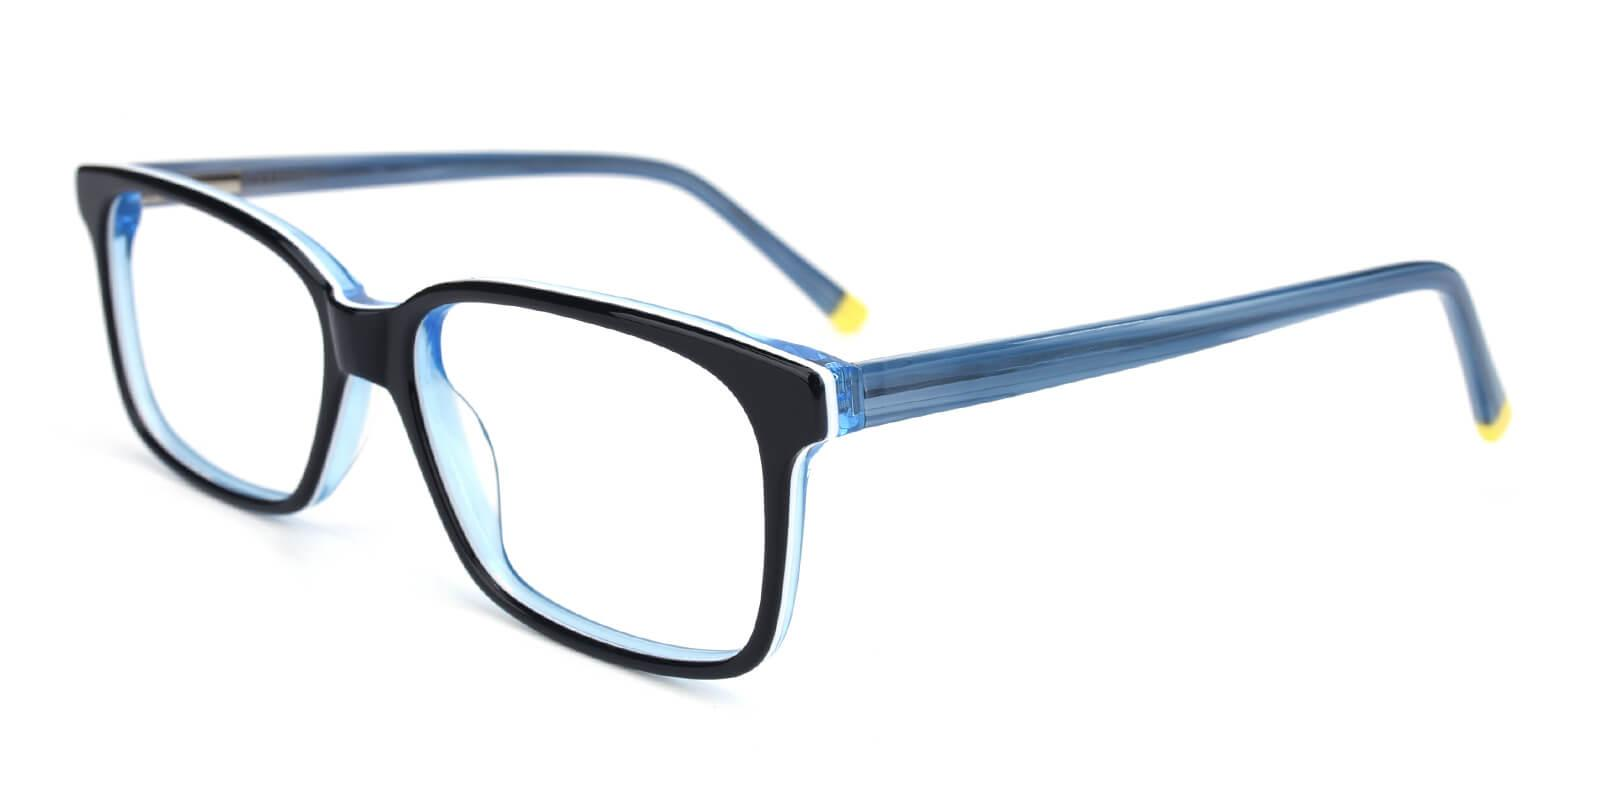 Bolayer-Blue-Rectangle-Acetate-Eyeglasses-additional1